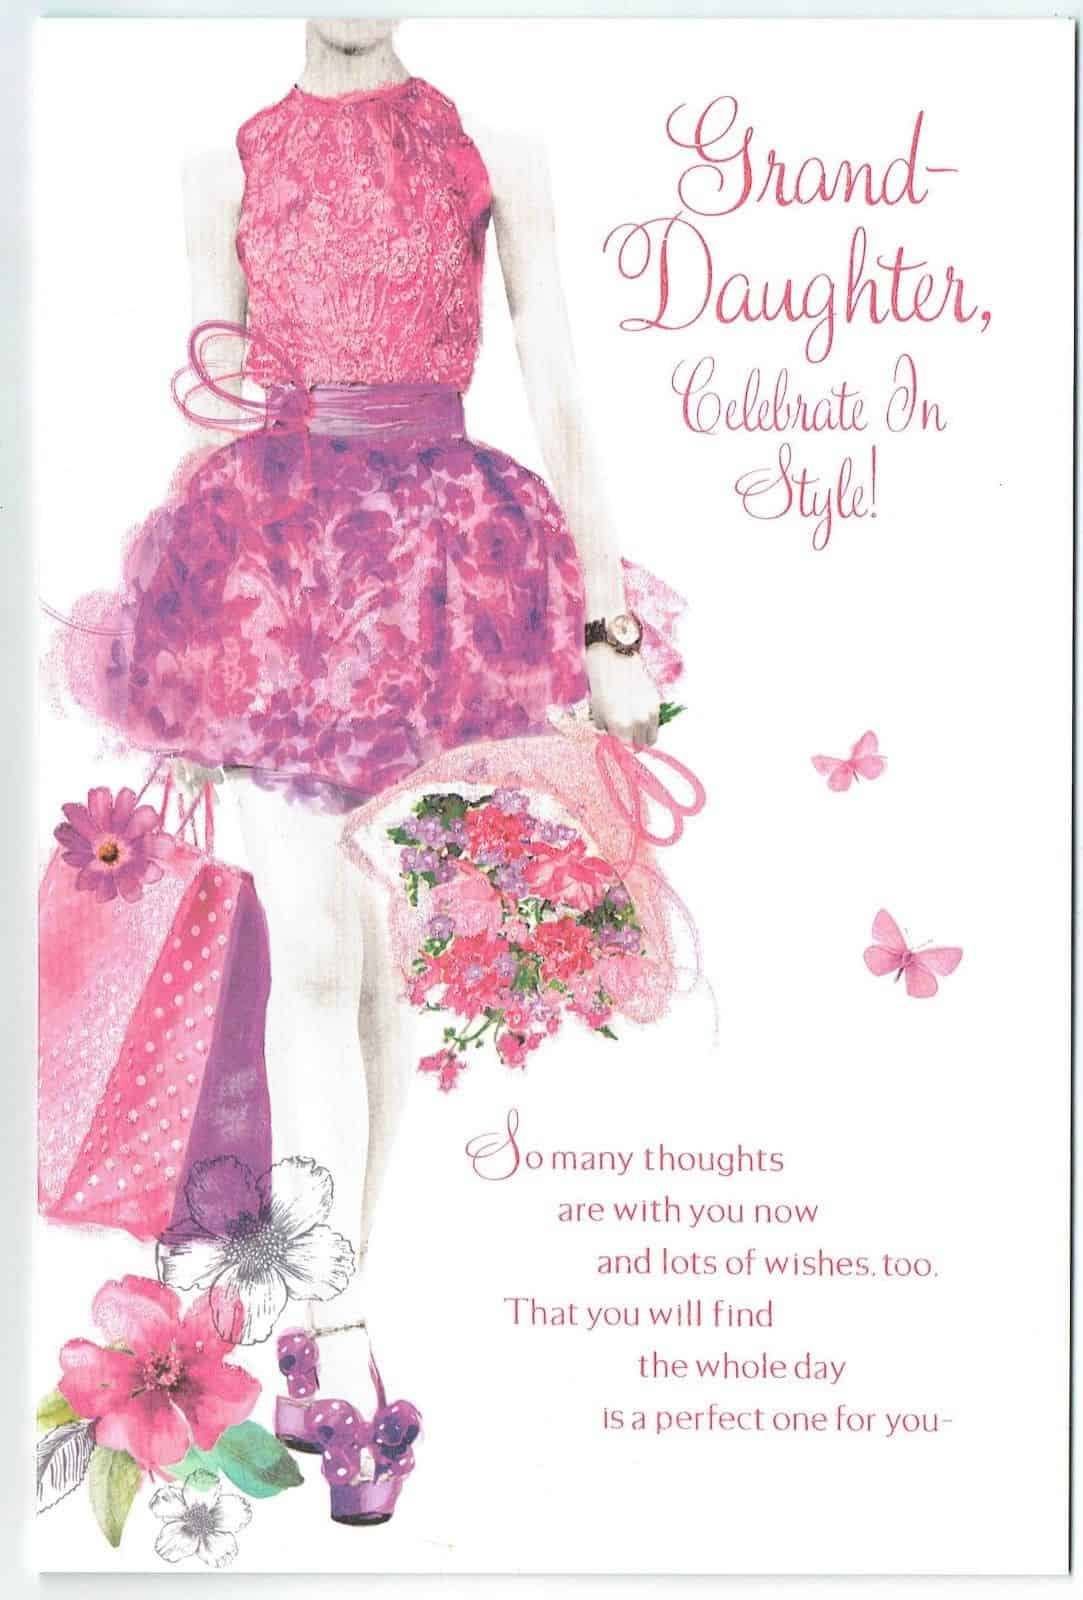 Granddaughter Birthday Card Embossed Elegant With Sentiment Verse